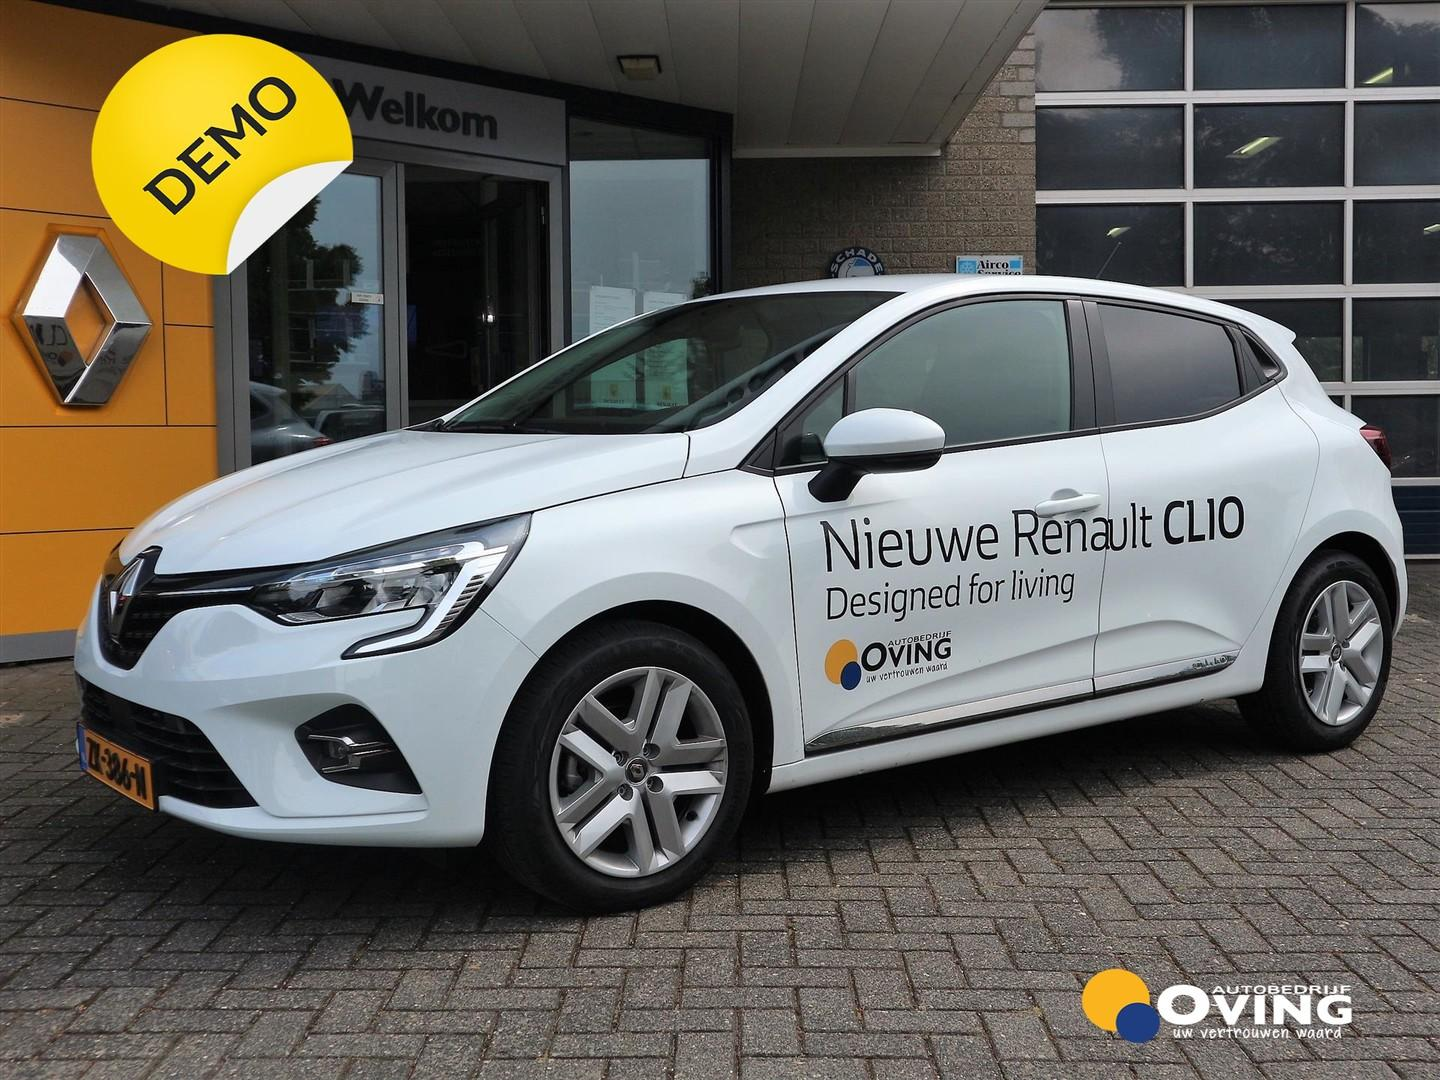 Renault Clio New 1.0tce 100pk zen*private lease va. € 279,-*fin va. 3,9%*